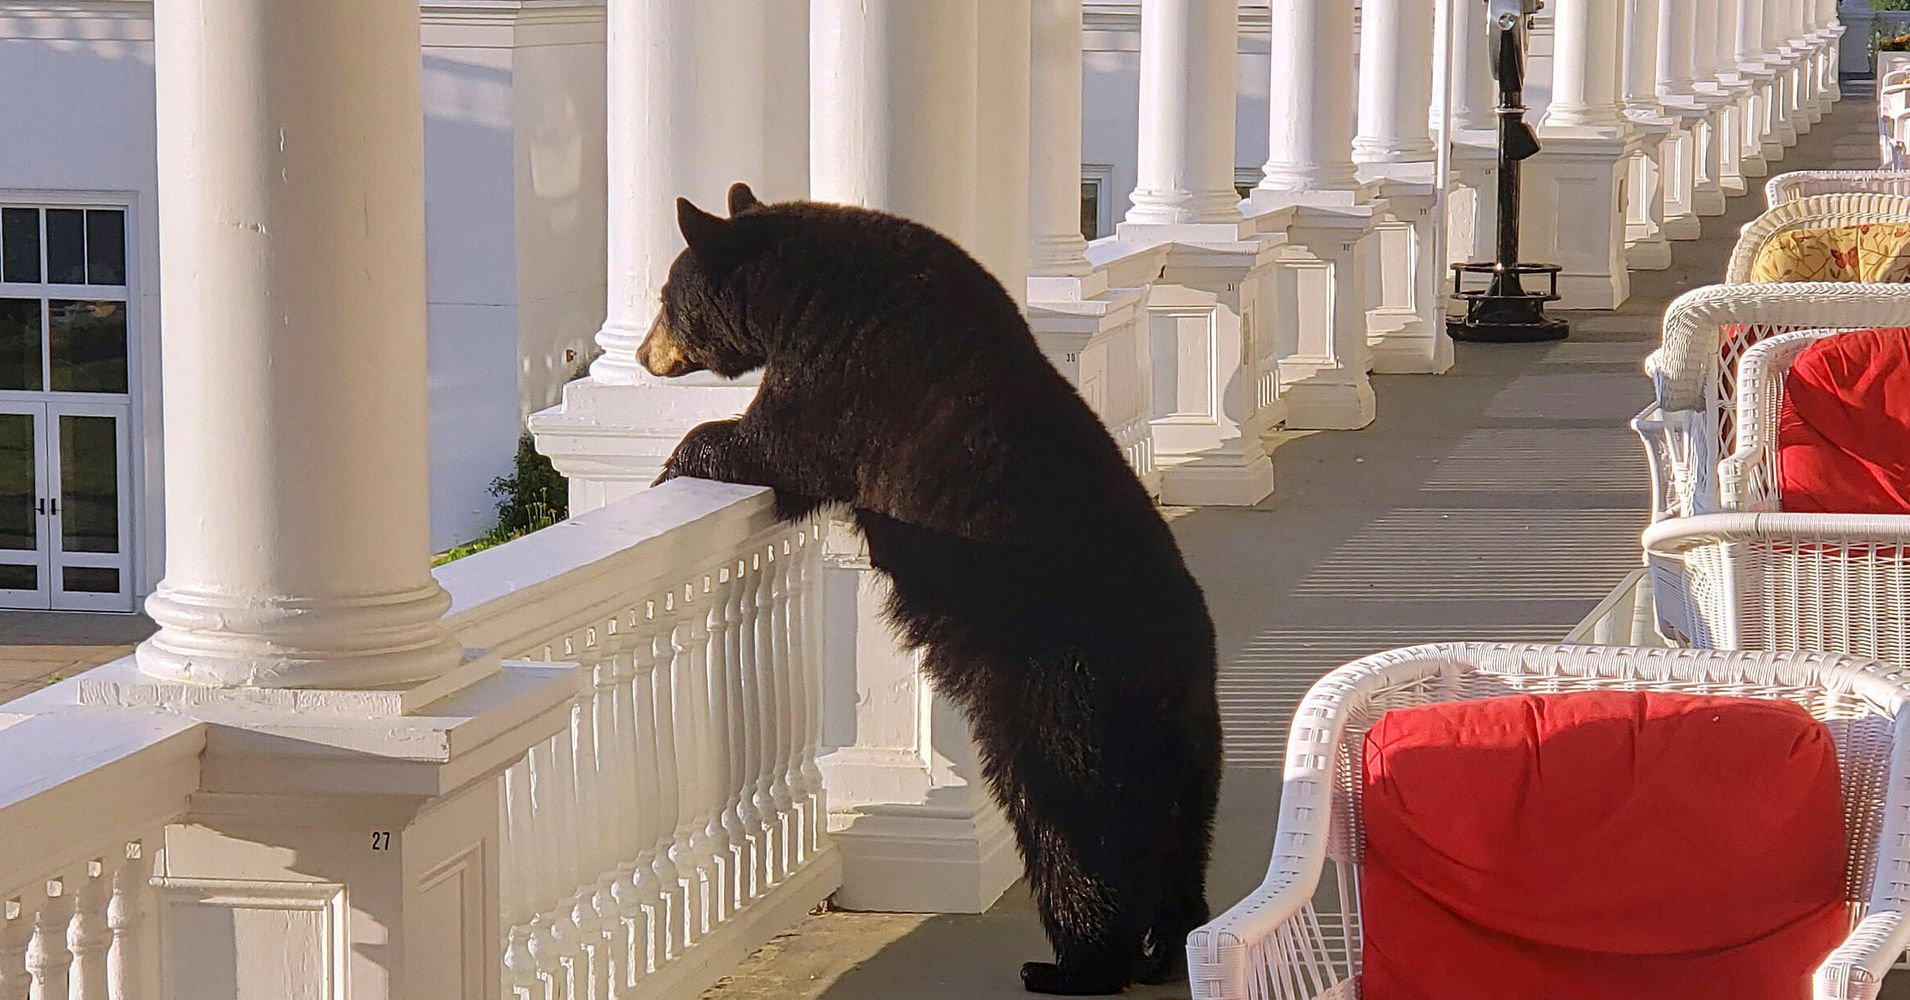 Westlake Legal Group 5d29fcb62600004a00044584 Glamorous Bear Watches Sunrise From Hotel Veranda